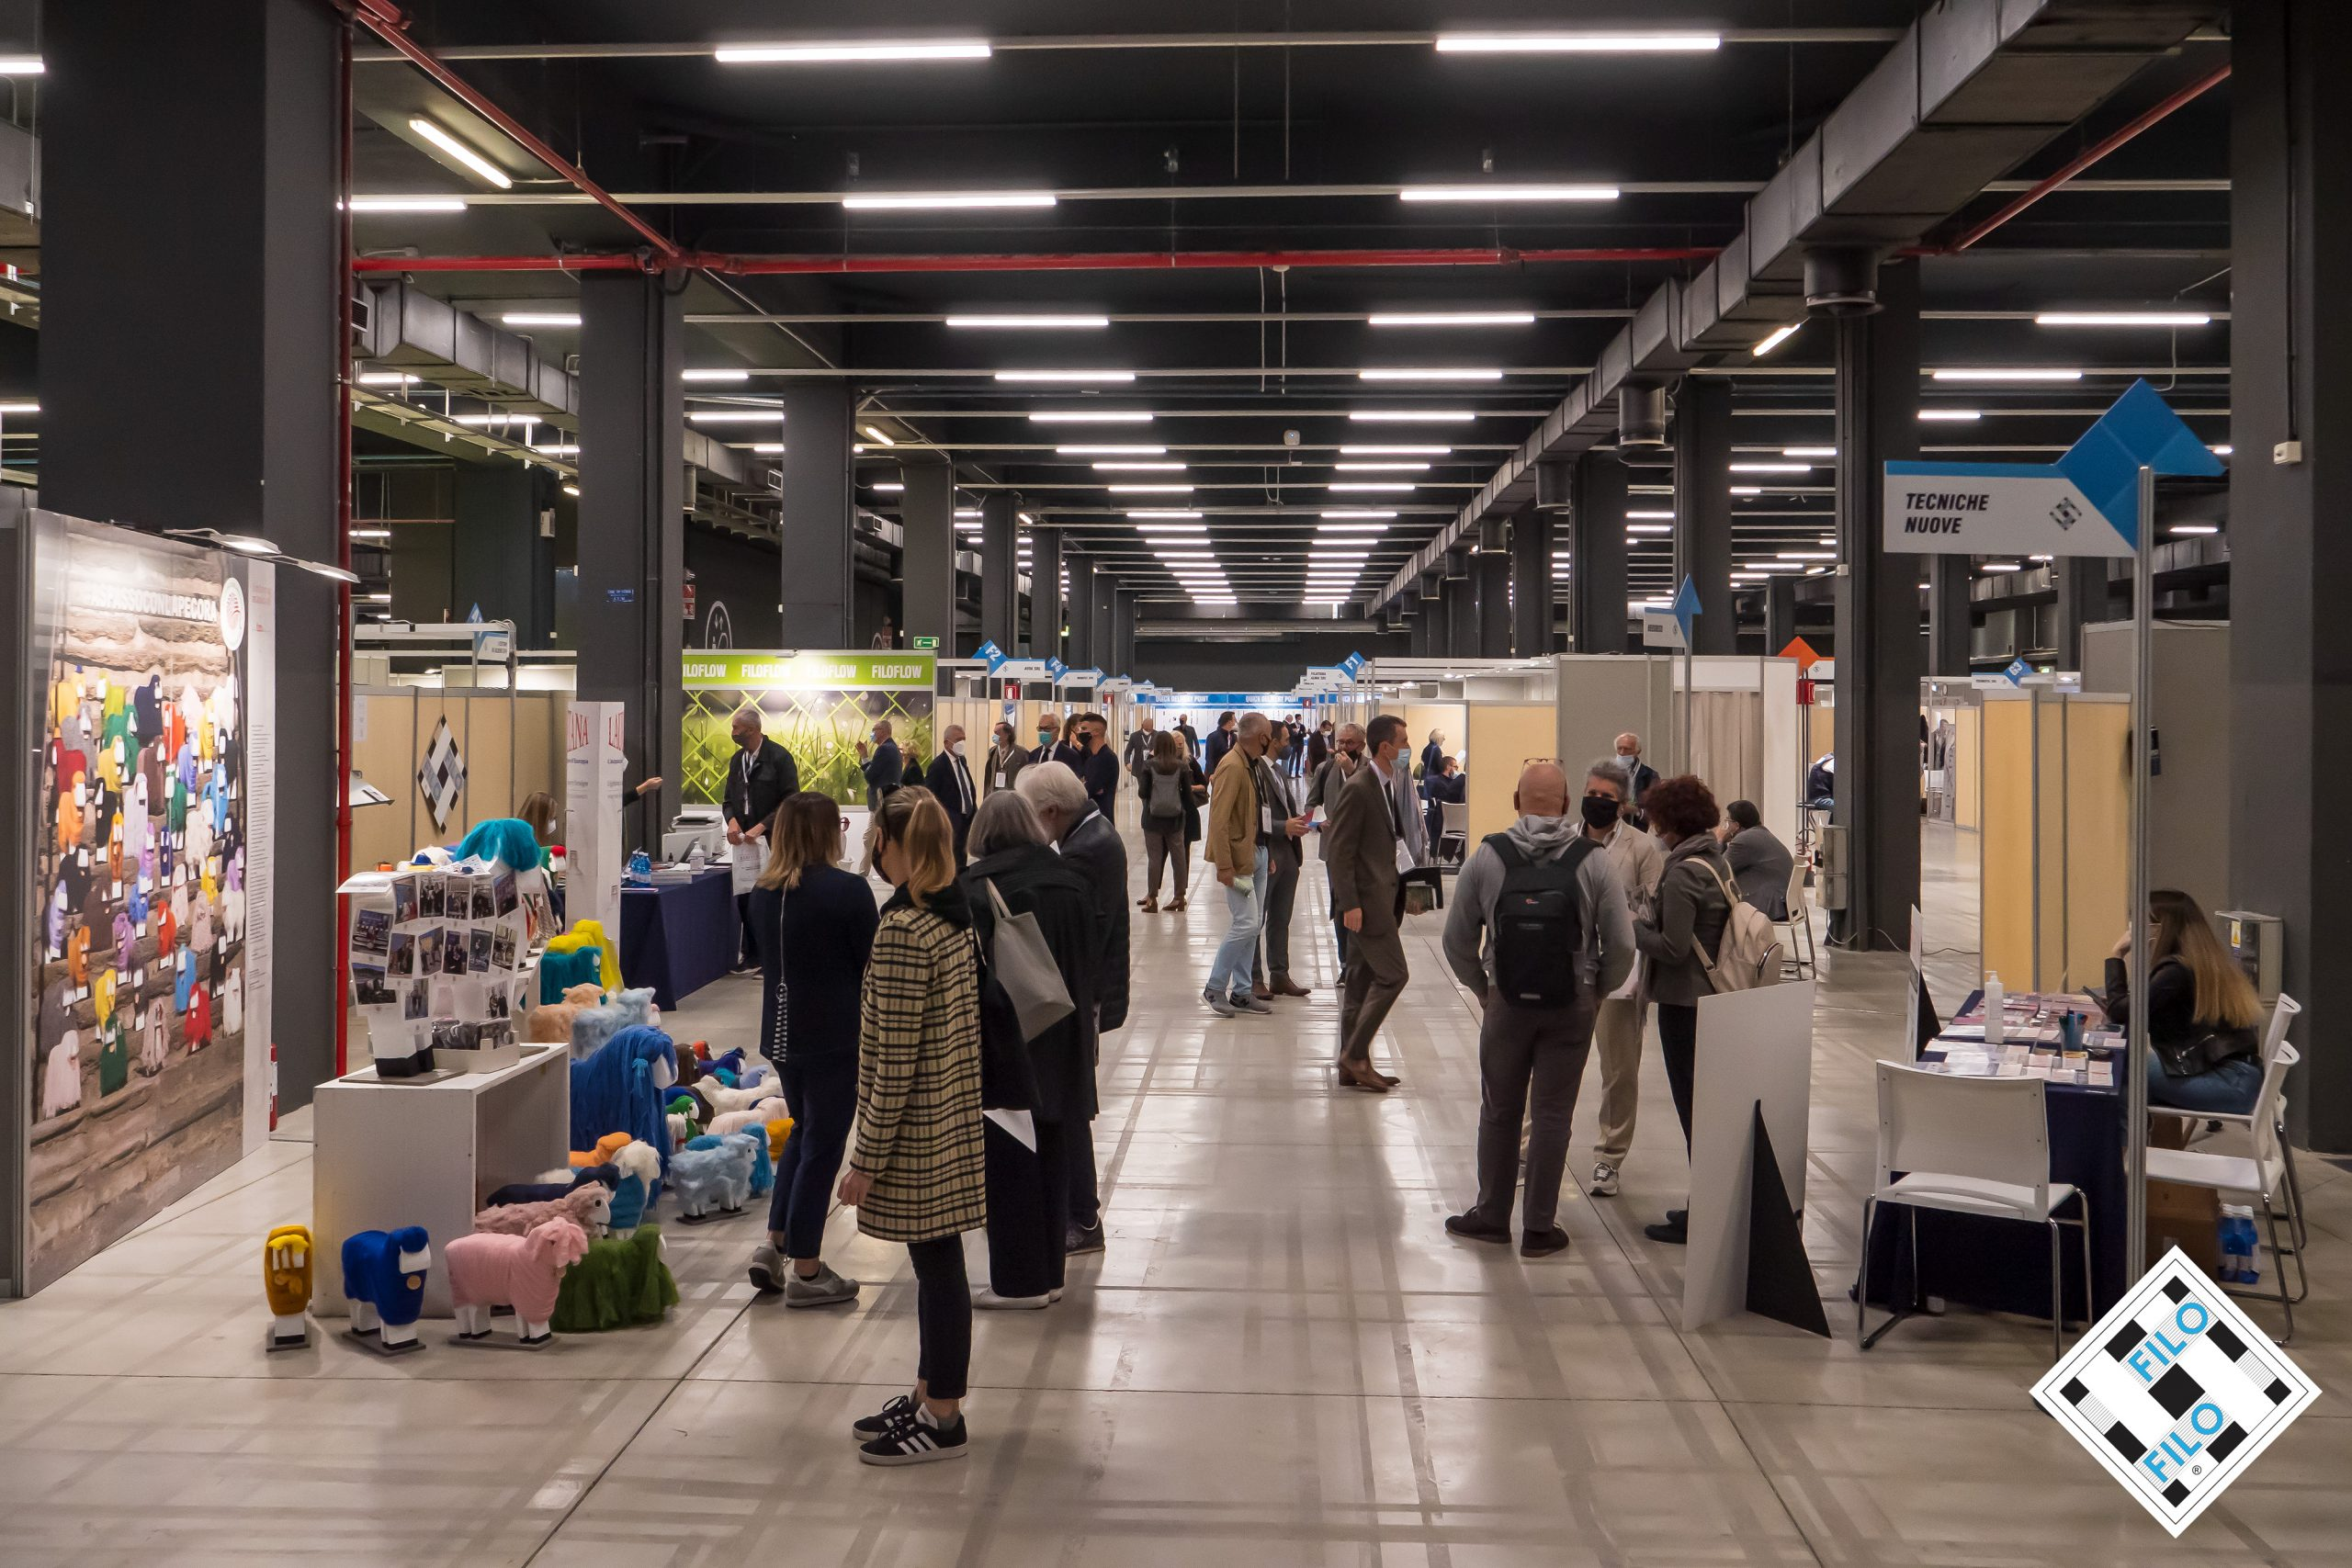 54th Edition Of Filo: The Exhibitors' Comments (First Part)